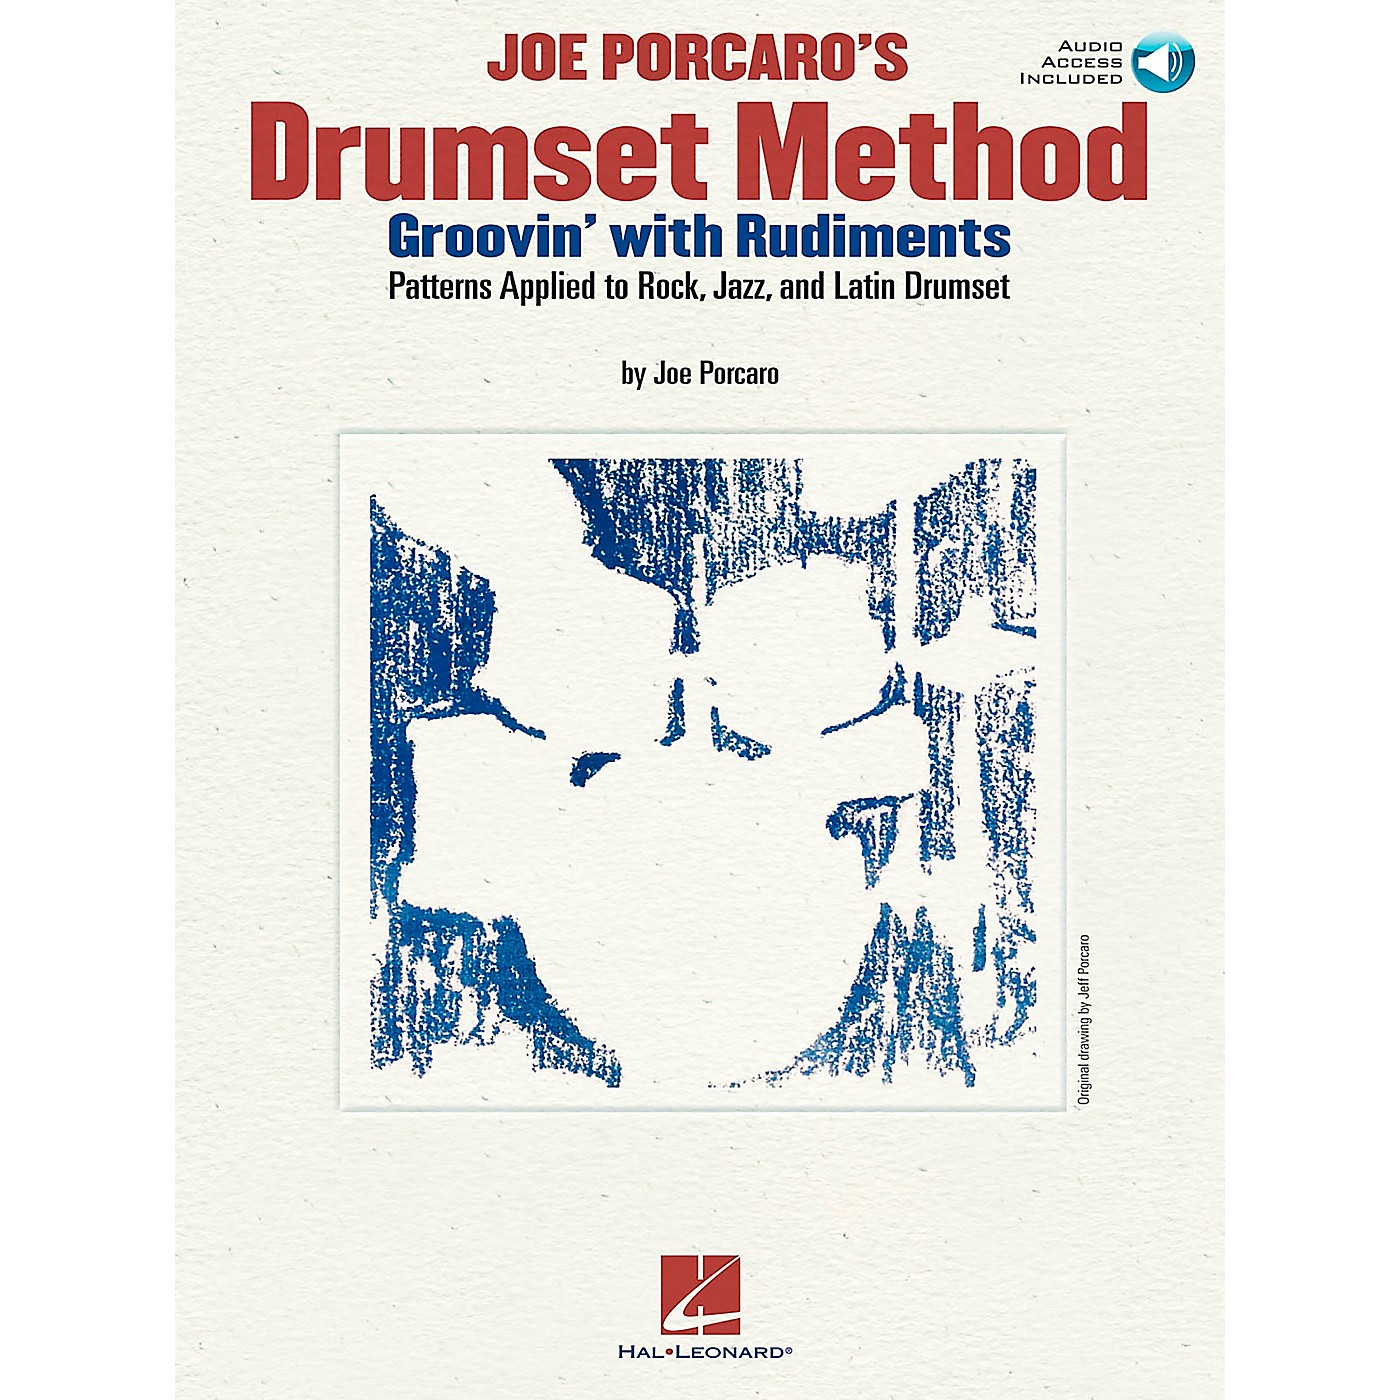 Hal Leonard Joe Porcaro's Drumset Method - Groovin' With The Rudiments (Book/CD) thumbnail